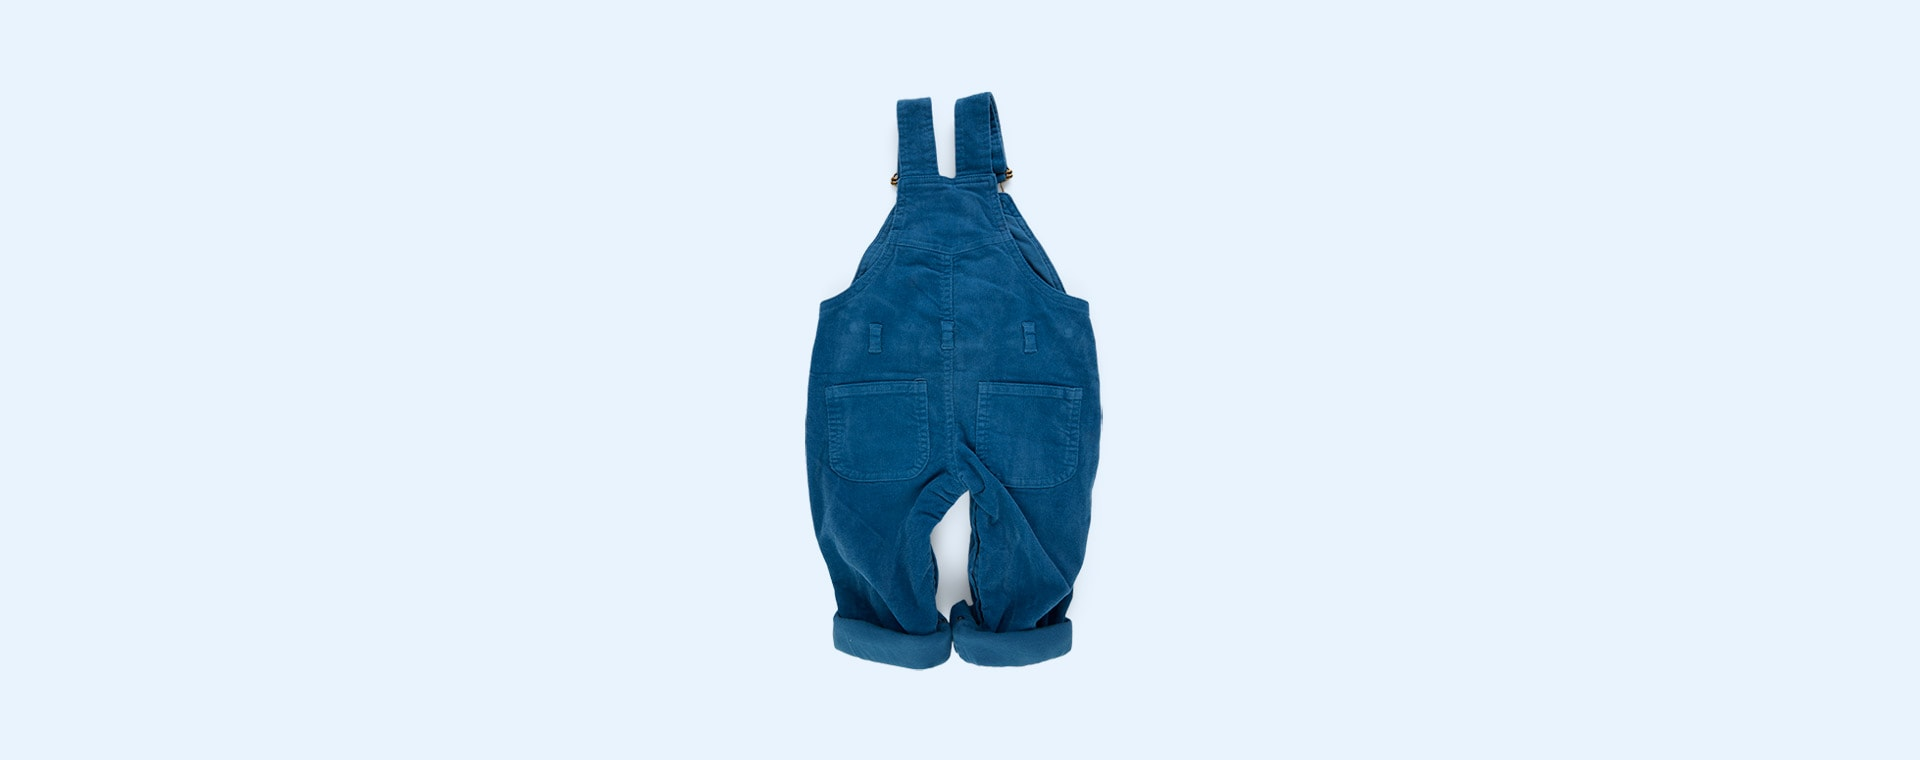 Nordic Blue Dotty Dungarees Corduroy Dungarees